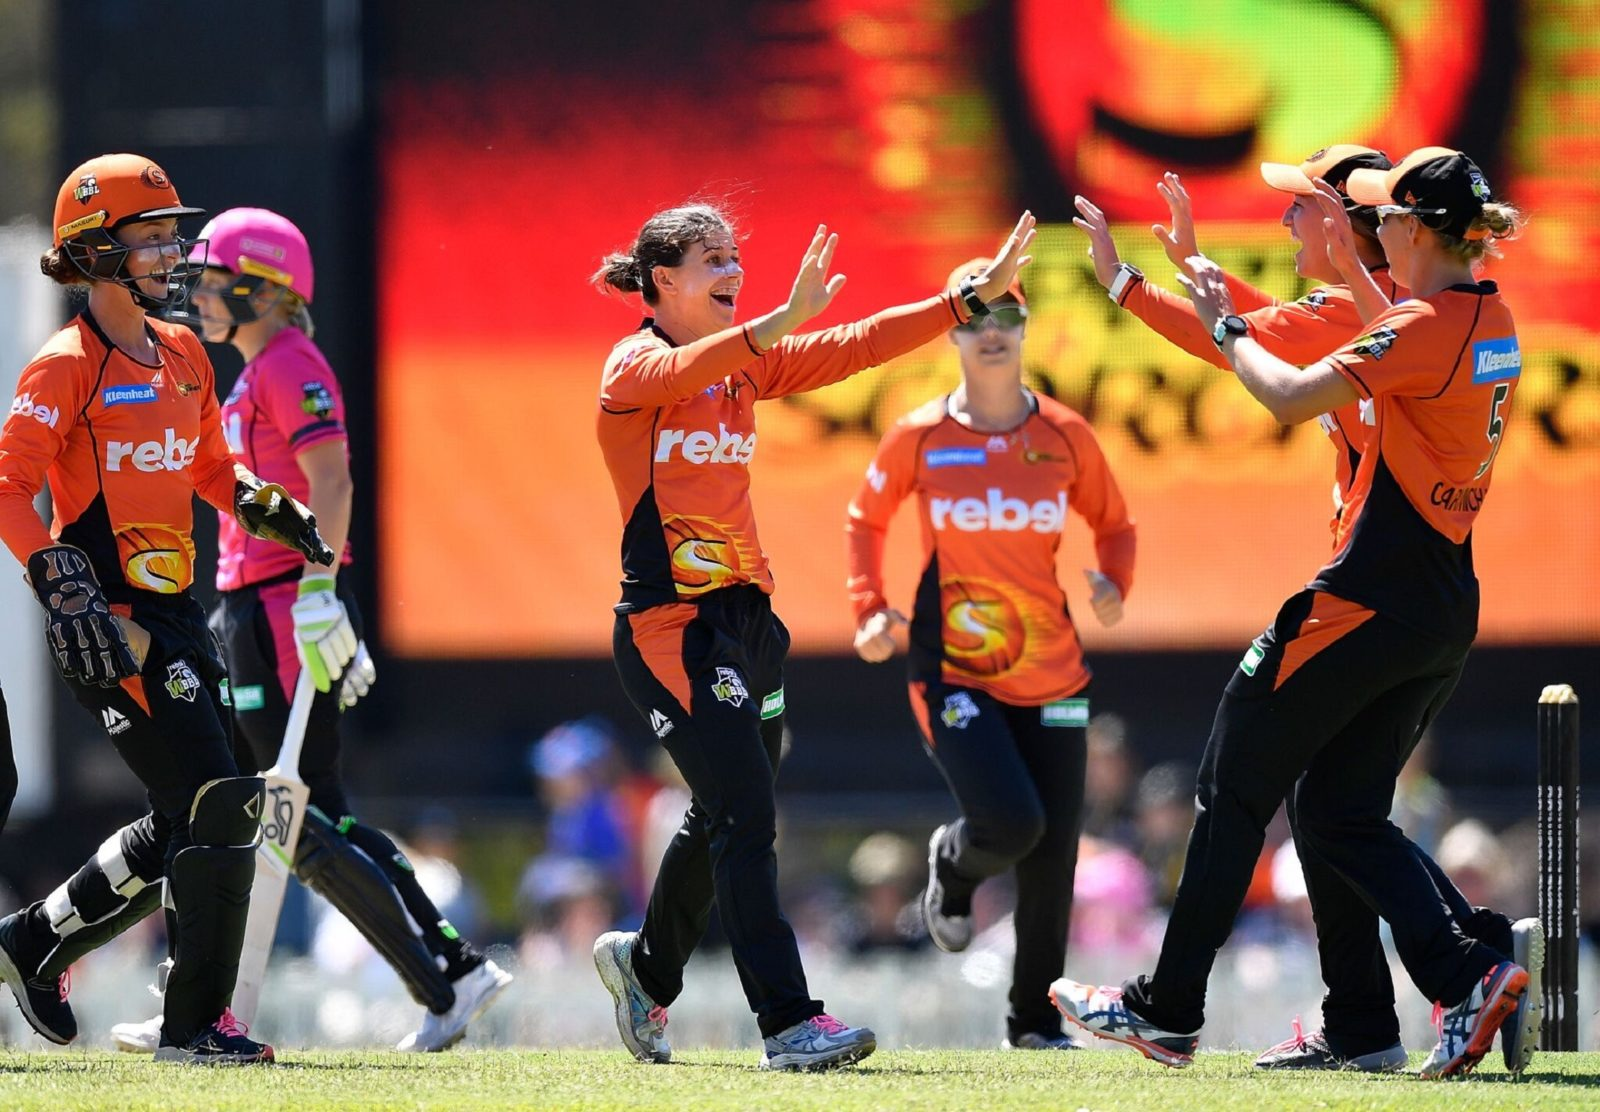 Women's Big Bash League Perth Scorchers vs Sydney Sixers, Caversham, Western Australia